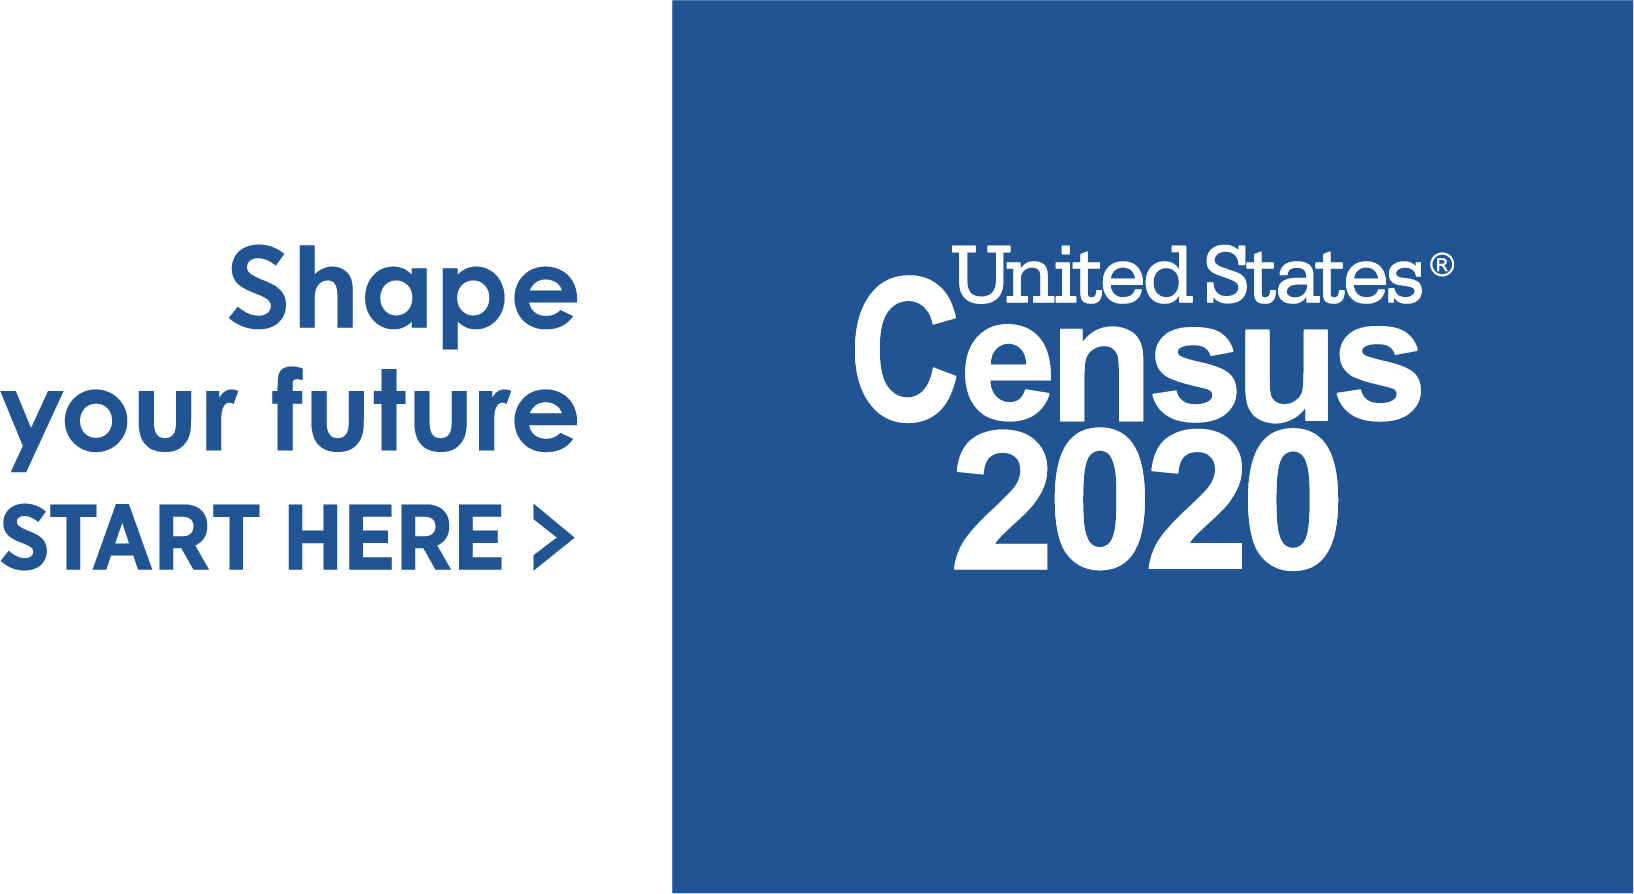 Start your future census 2020